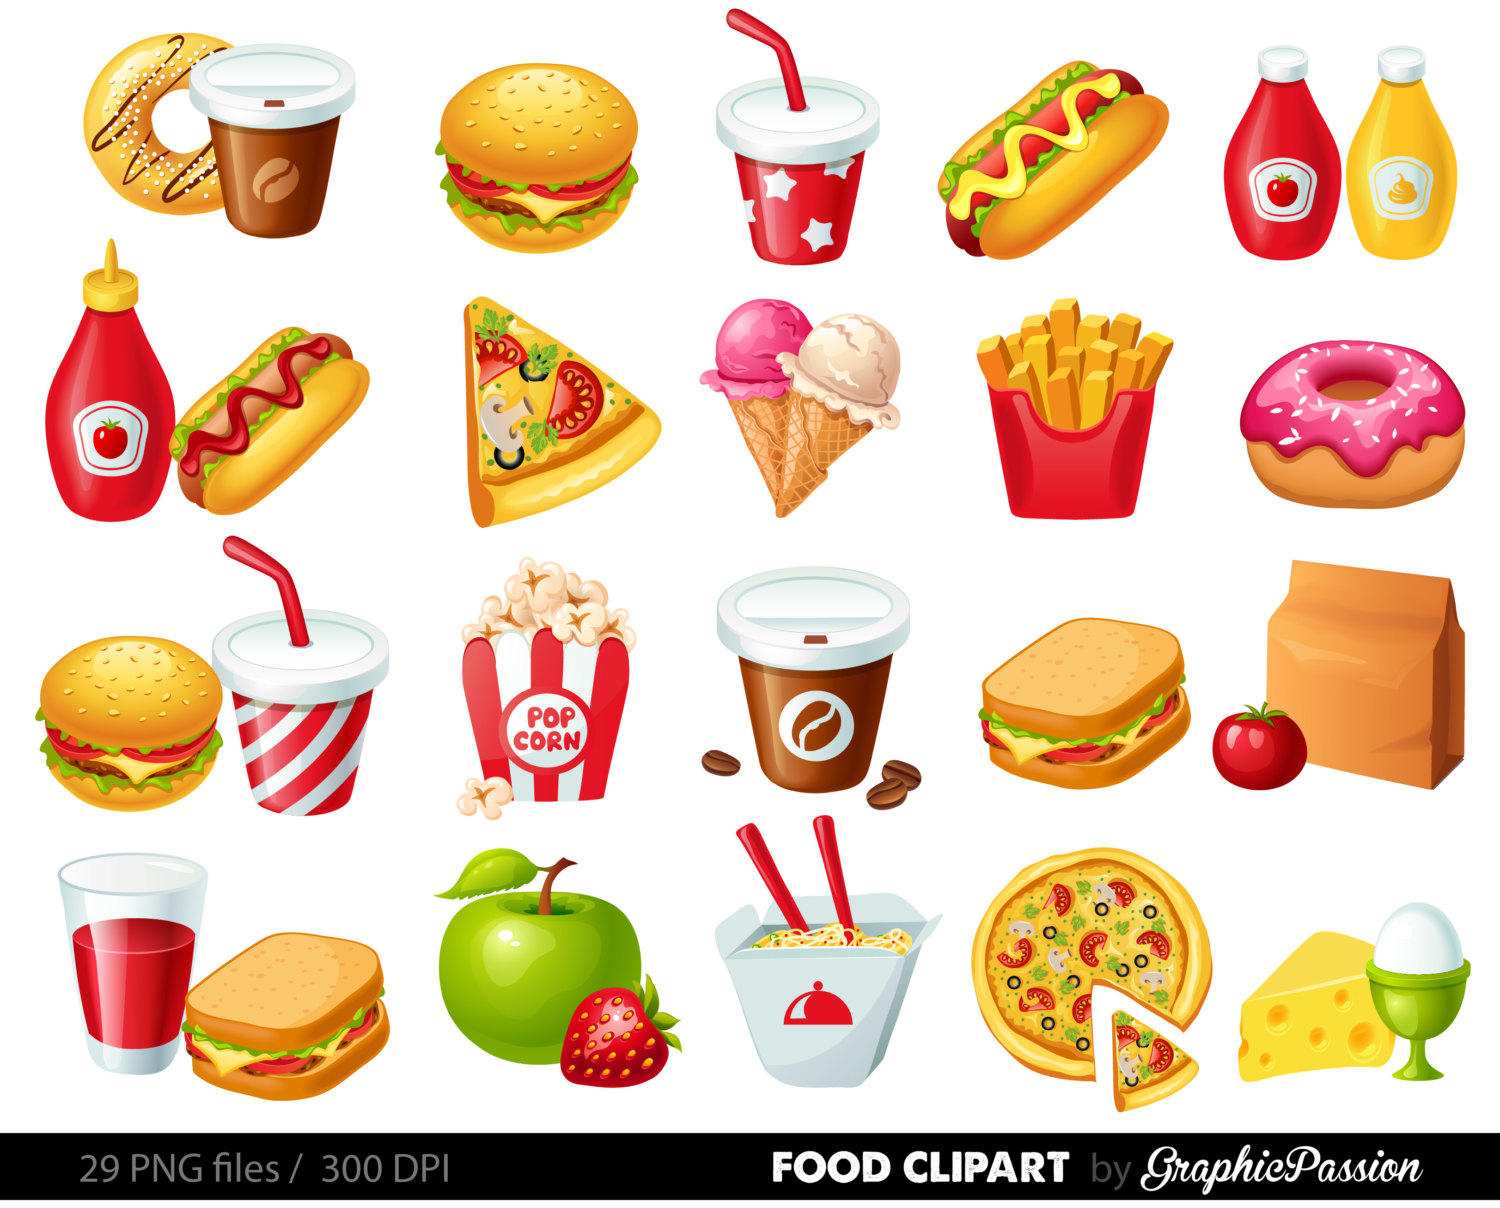 Free Food Graphics Cliparts, Download Free Clip Art, Free.